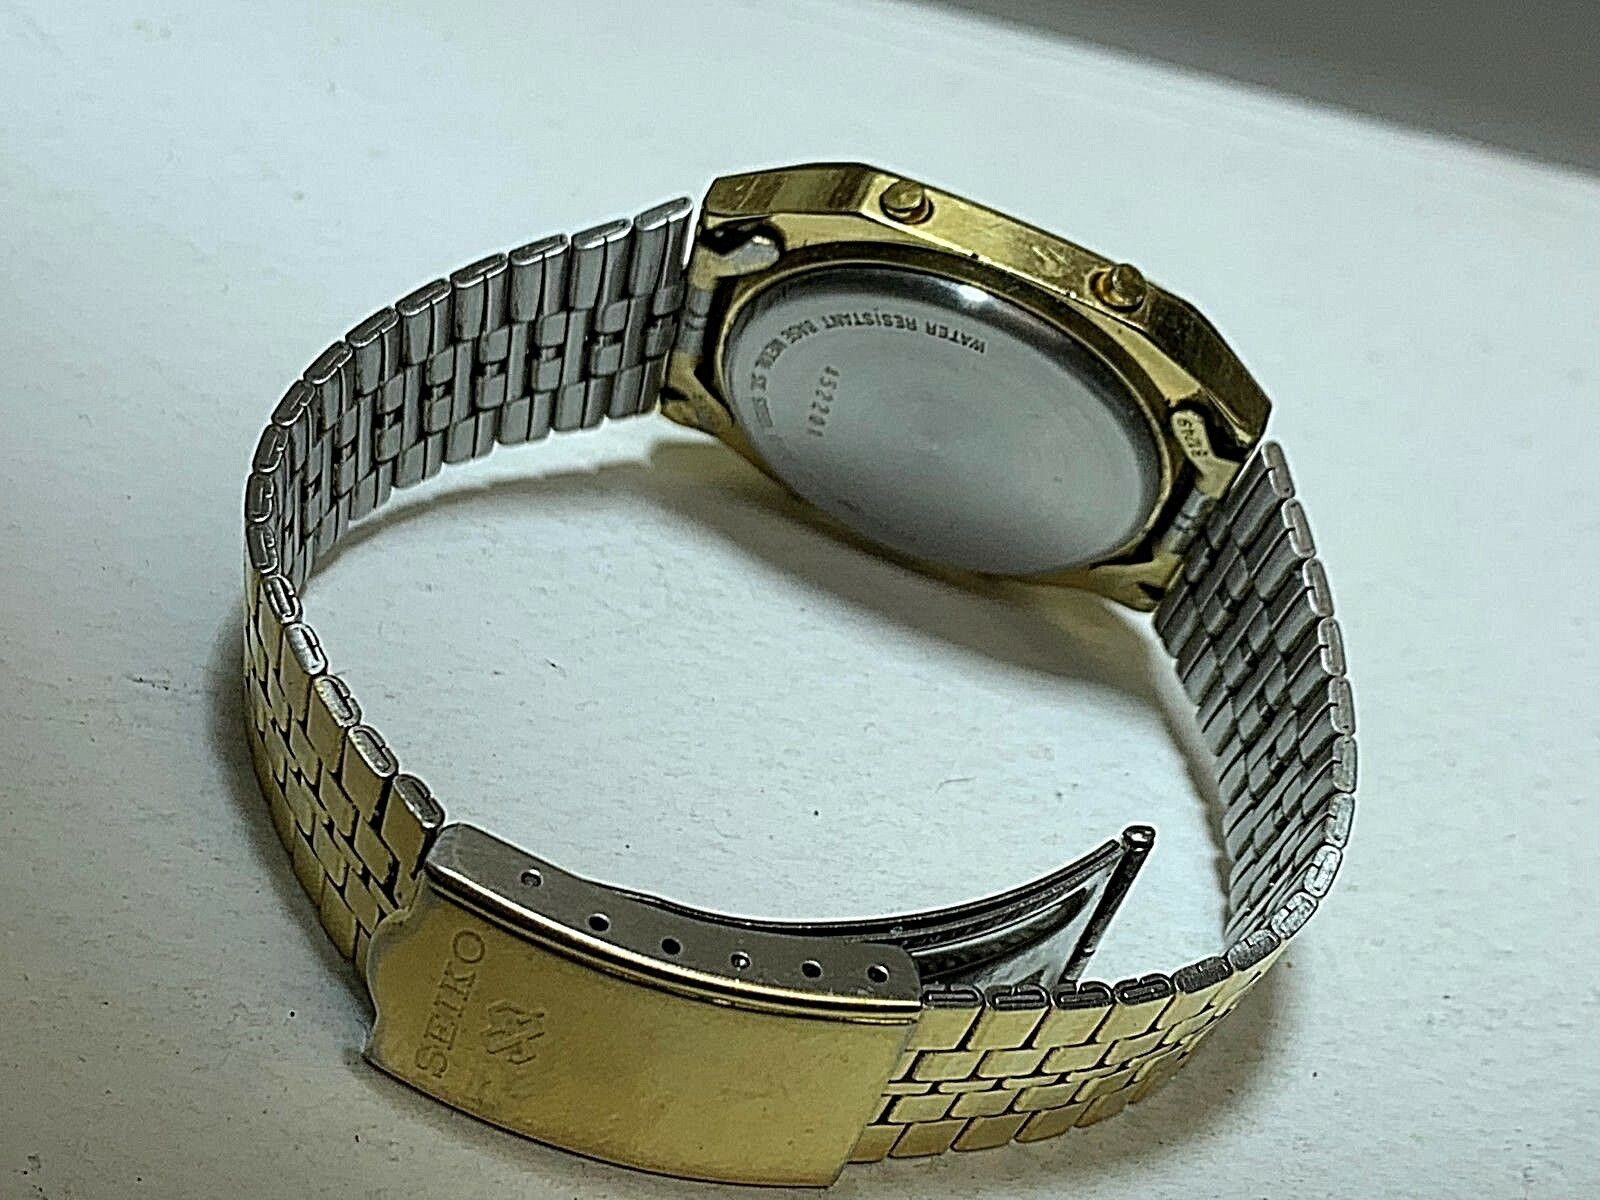 SEIKO VINTAGE DIGITAL A914-5A09 IN GOOD CONDITION FULL FUNCTIONAL GOLD TONE image 2